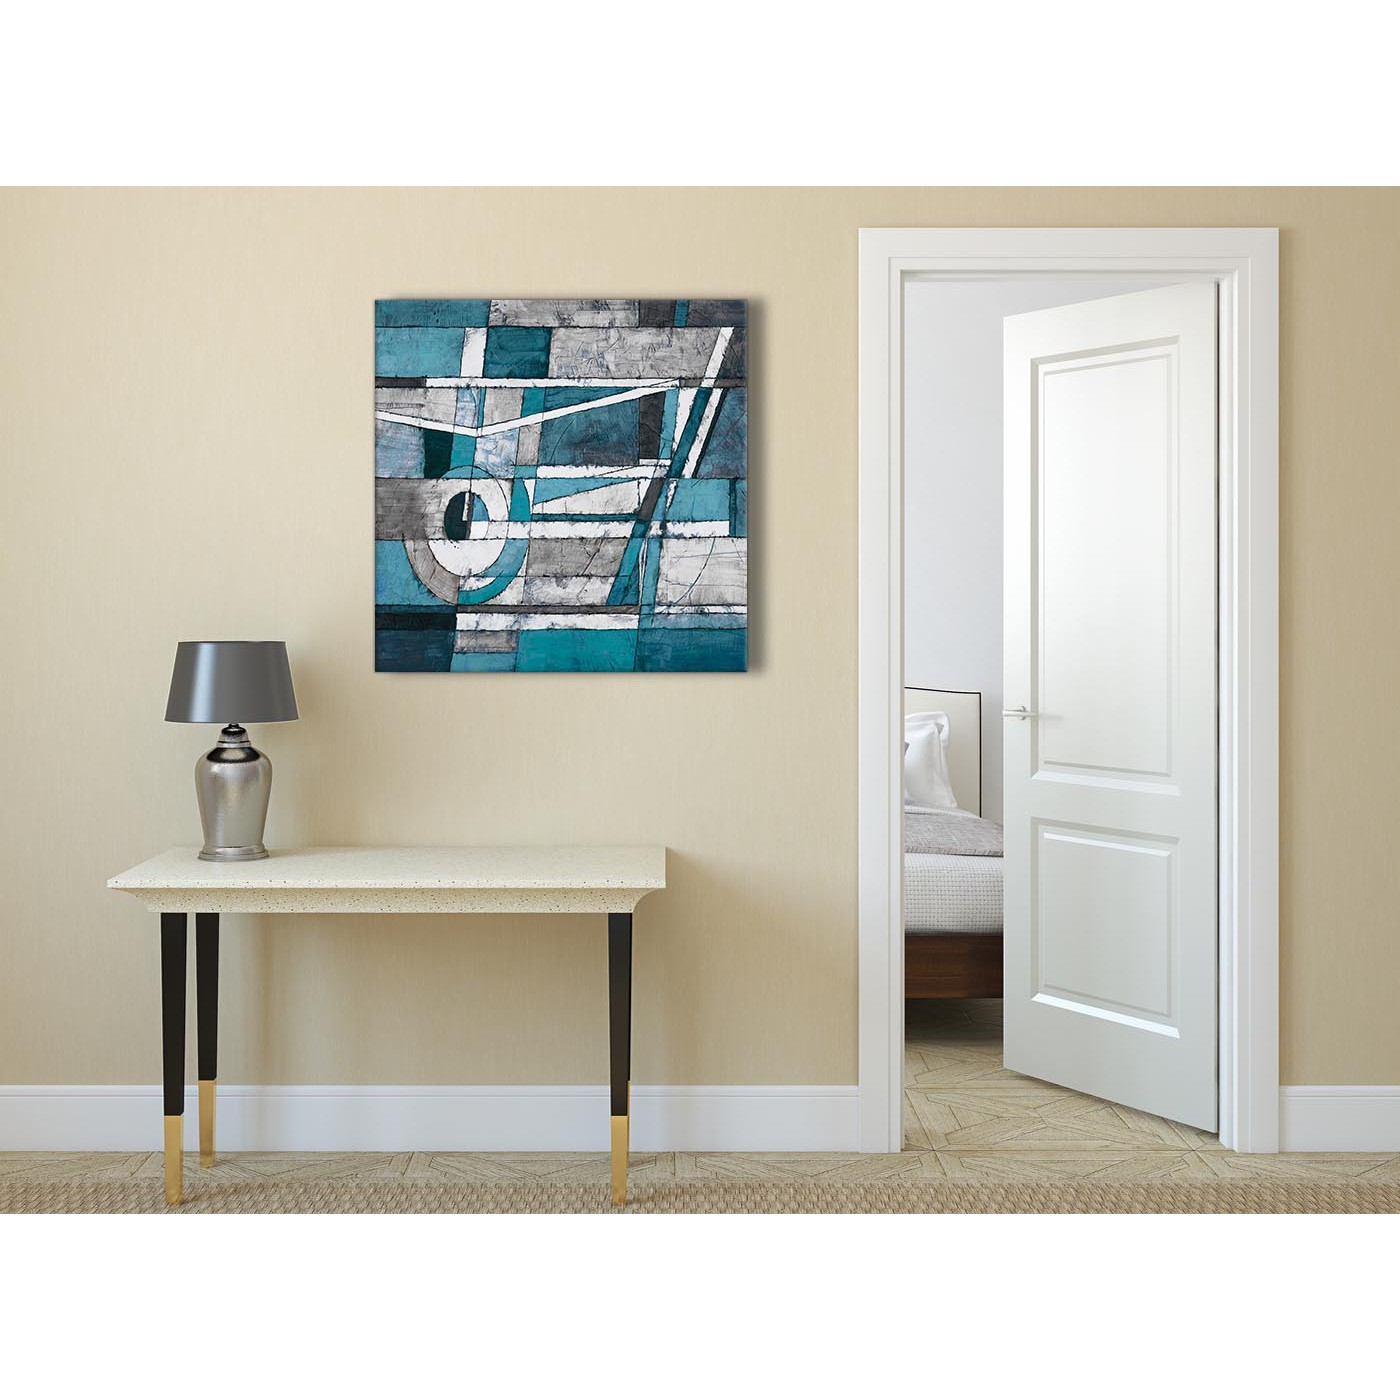 Teal Dining Room: Teal Grey Painting Abstract Dining Room Canvas Pictures